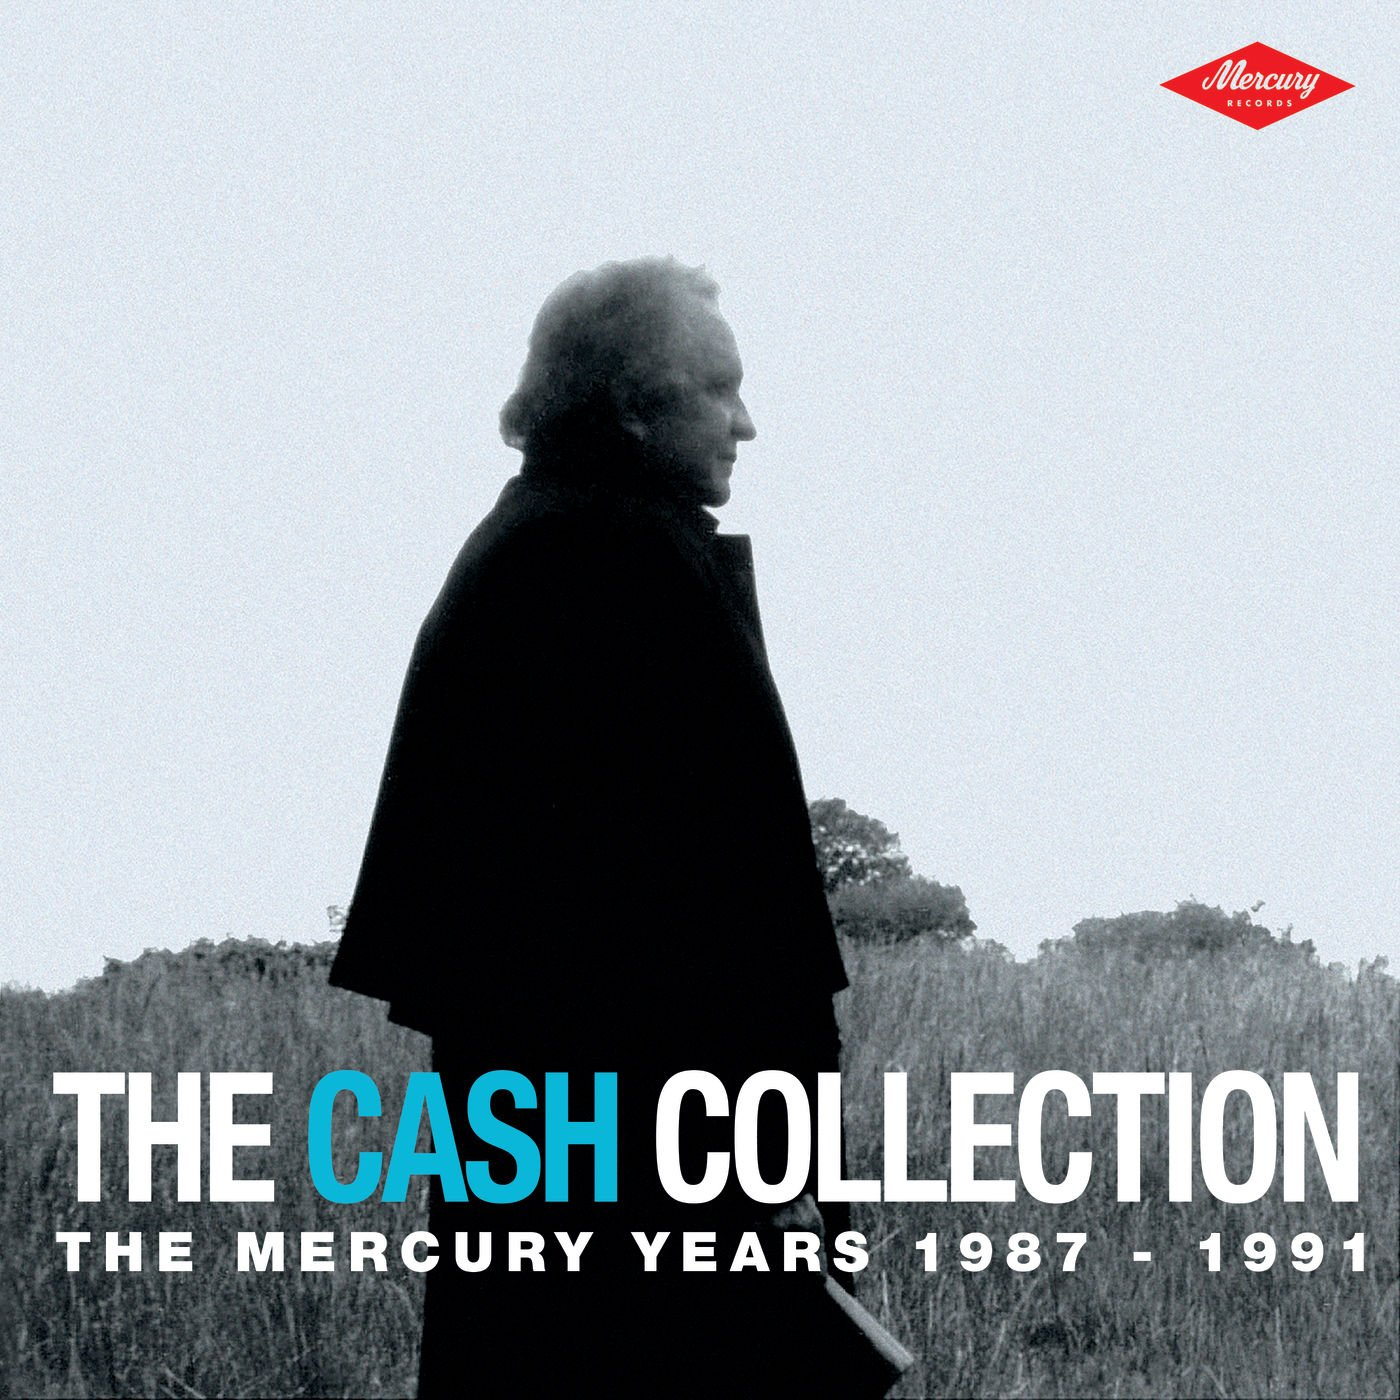 Johnny Cash - The Cash Collection  The Mercury Years 1987-1991 (Silver Pressed Promo 3CD)*